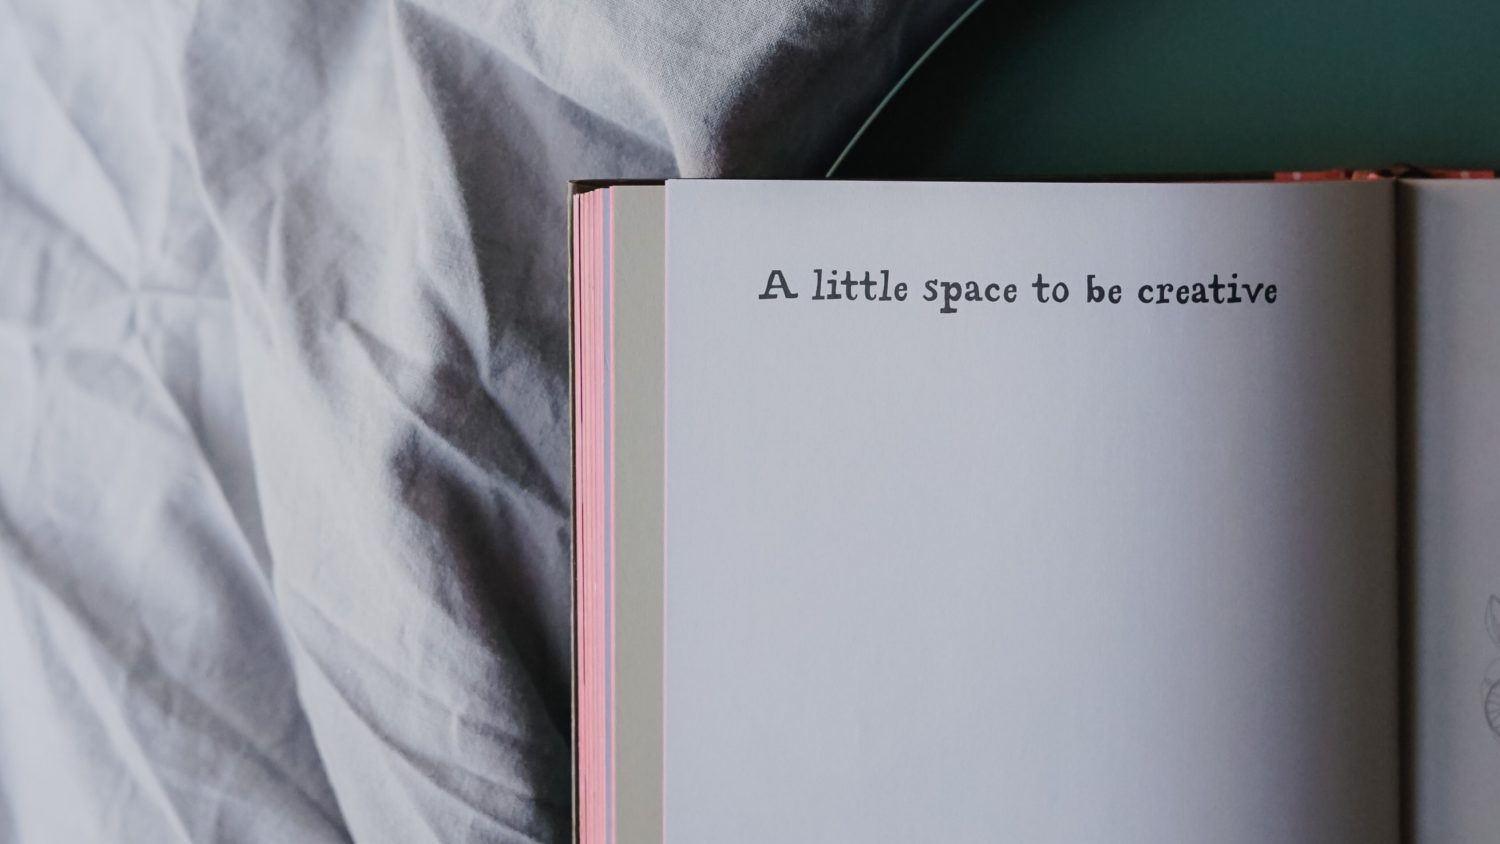 Notizbuch mit Text: A little space to be creative.